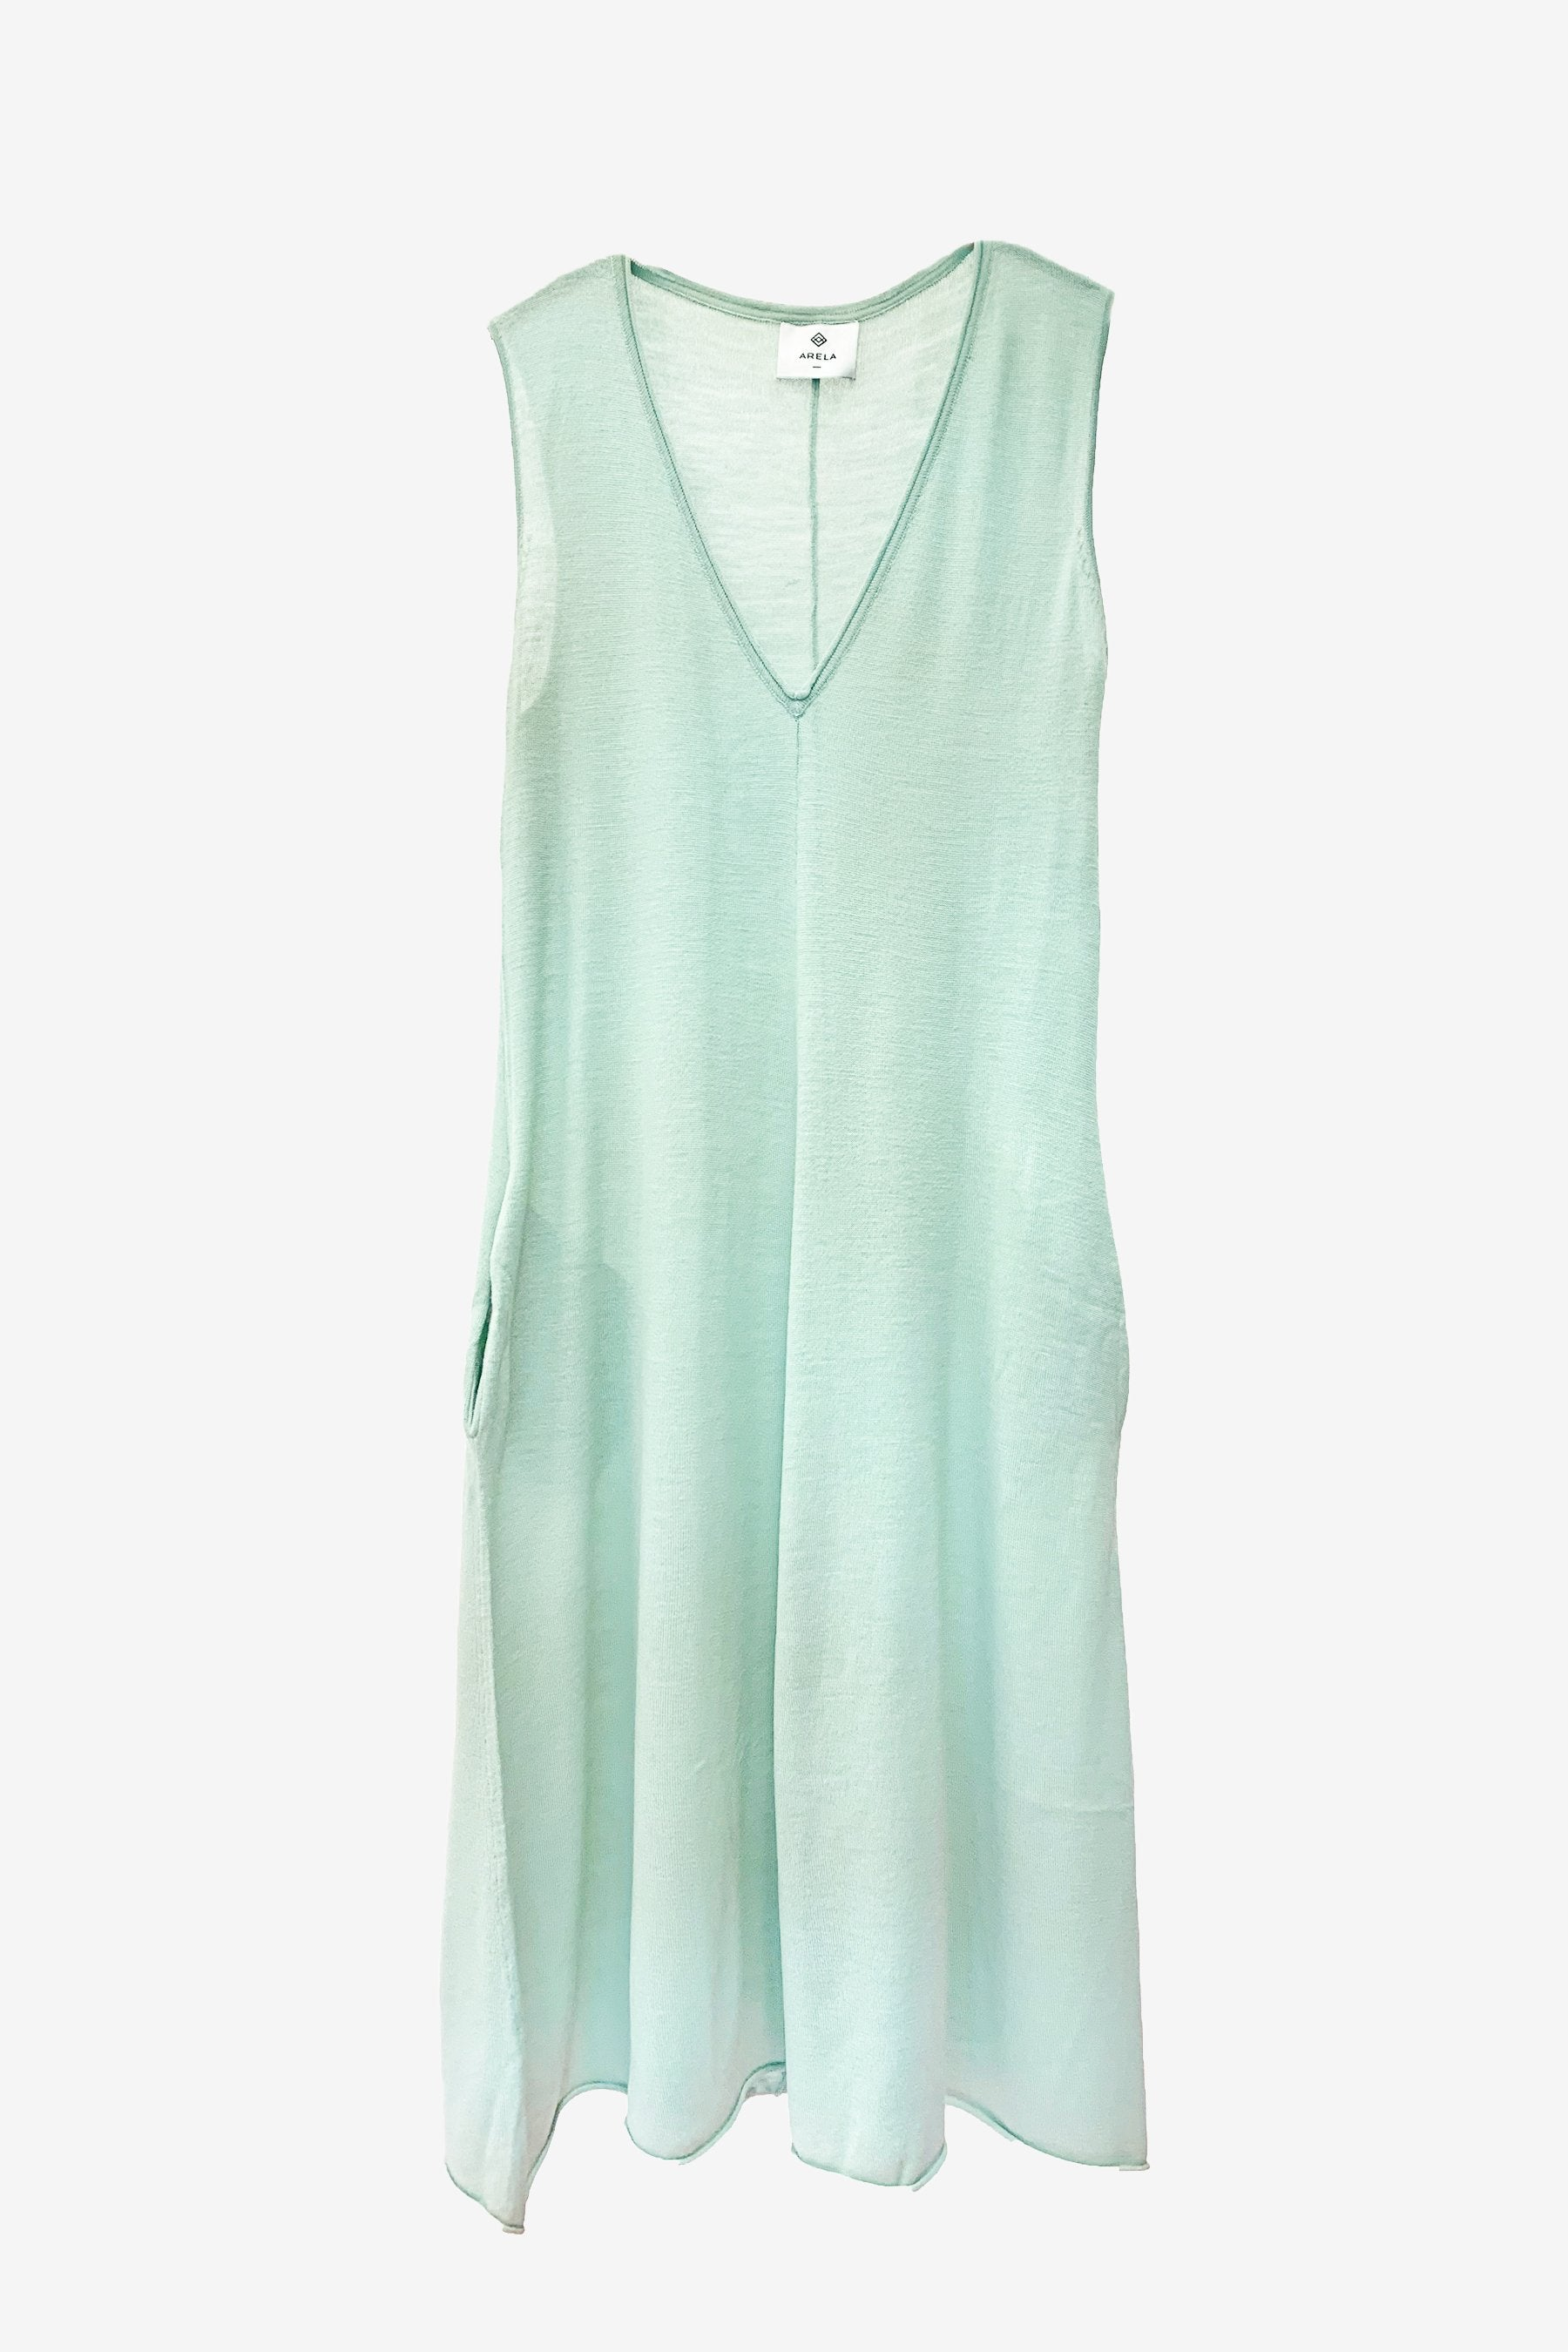 For Good: Mint Green Maxi Dress, size M